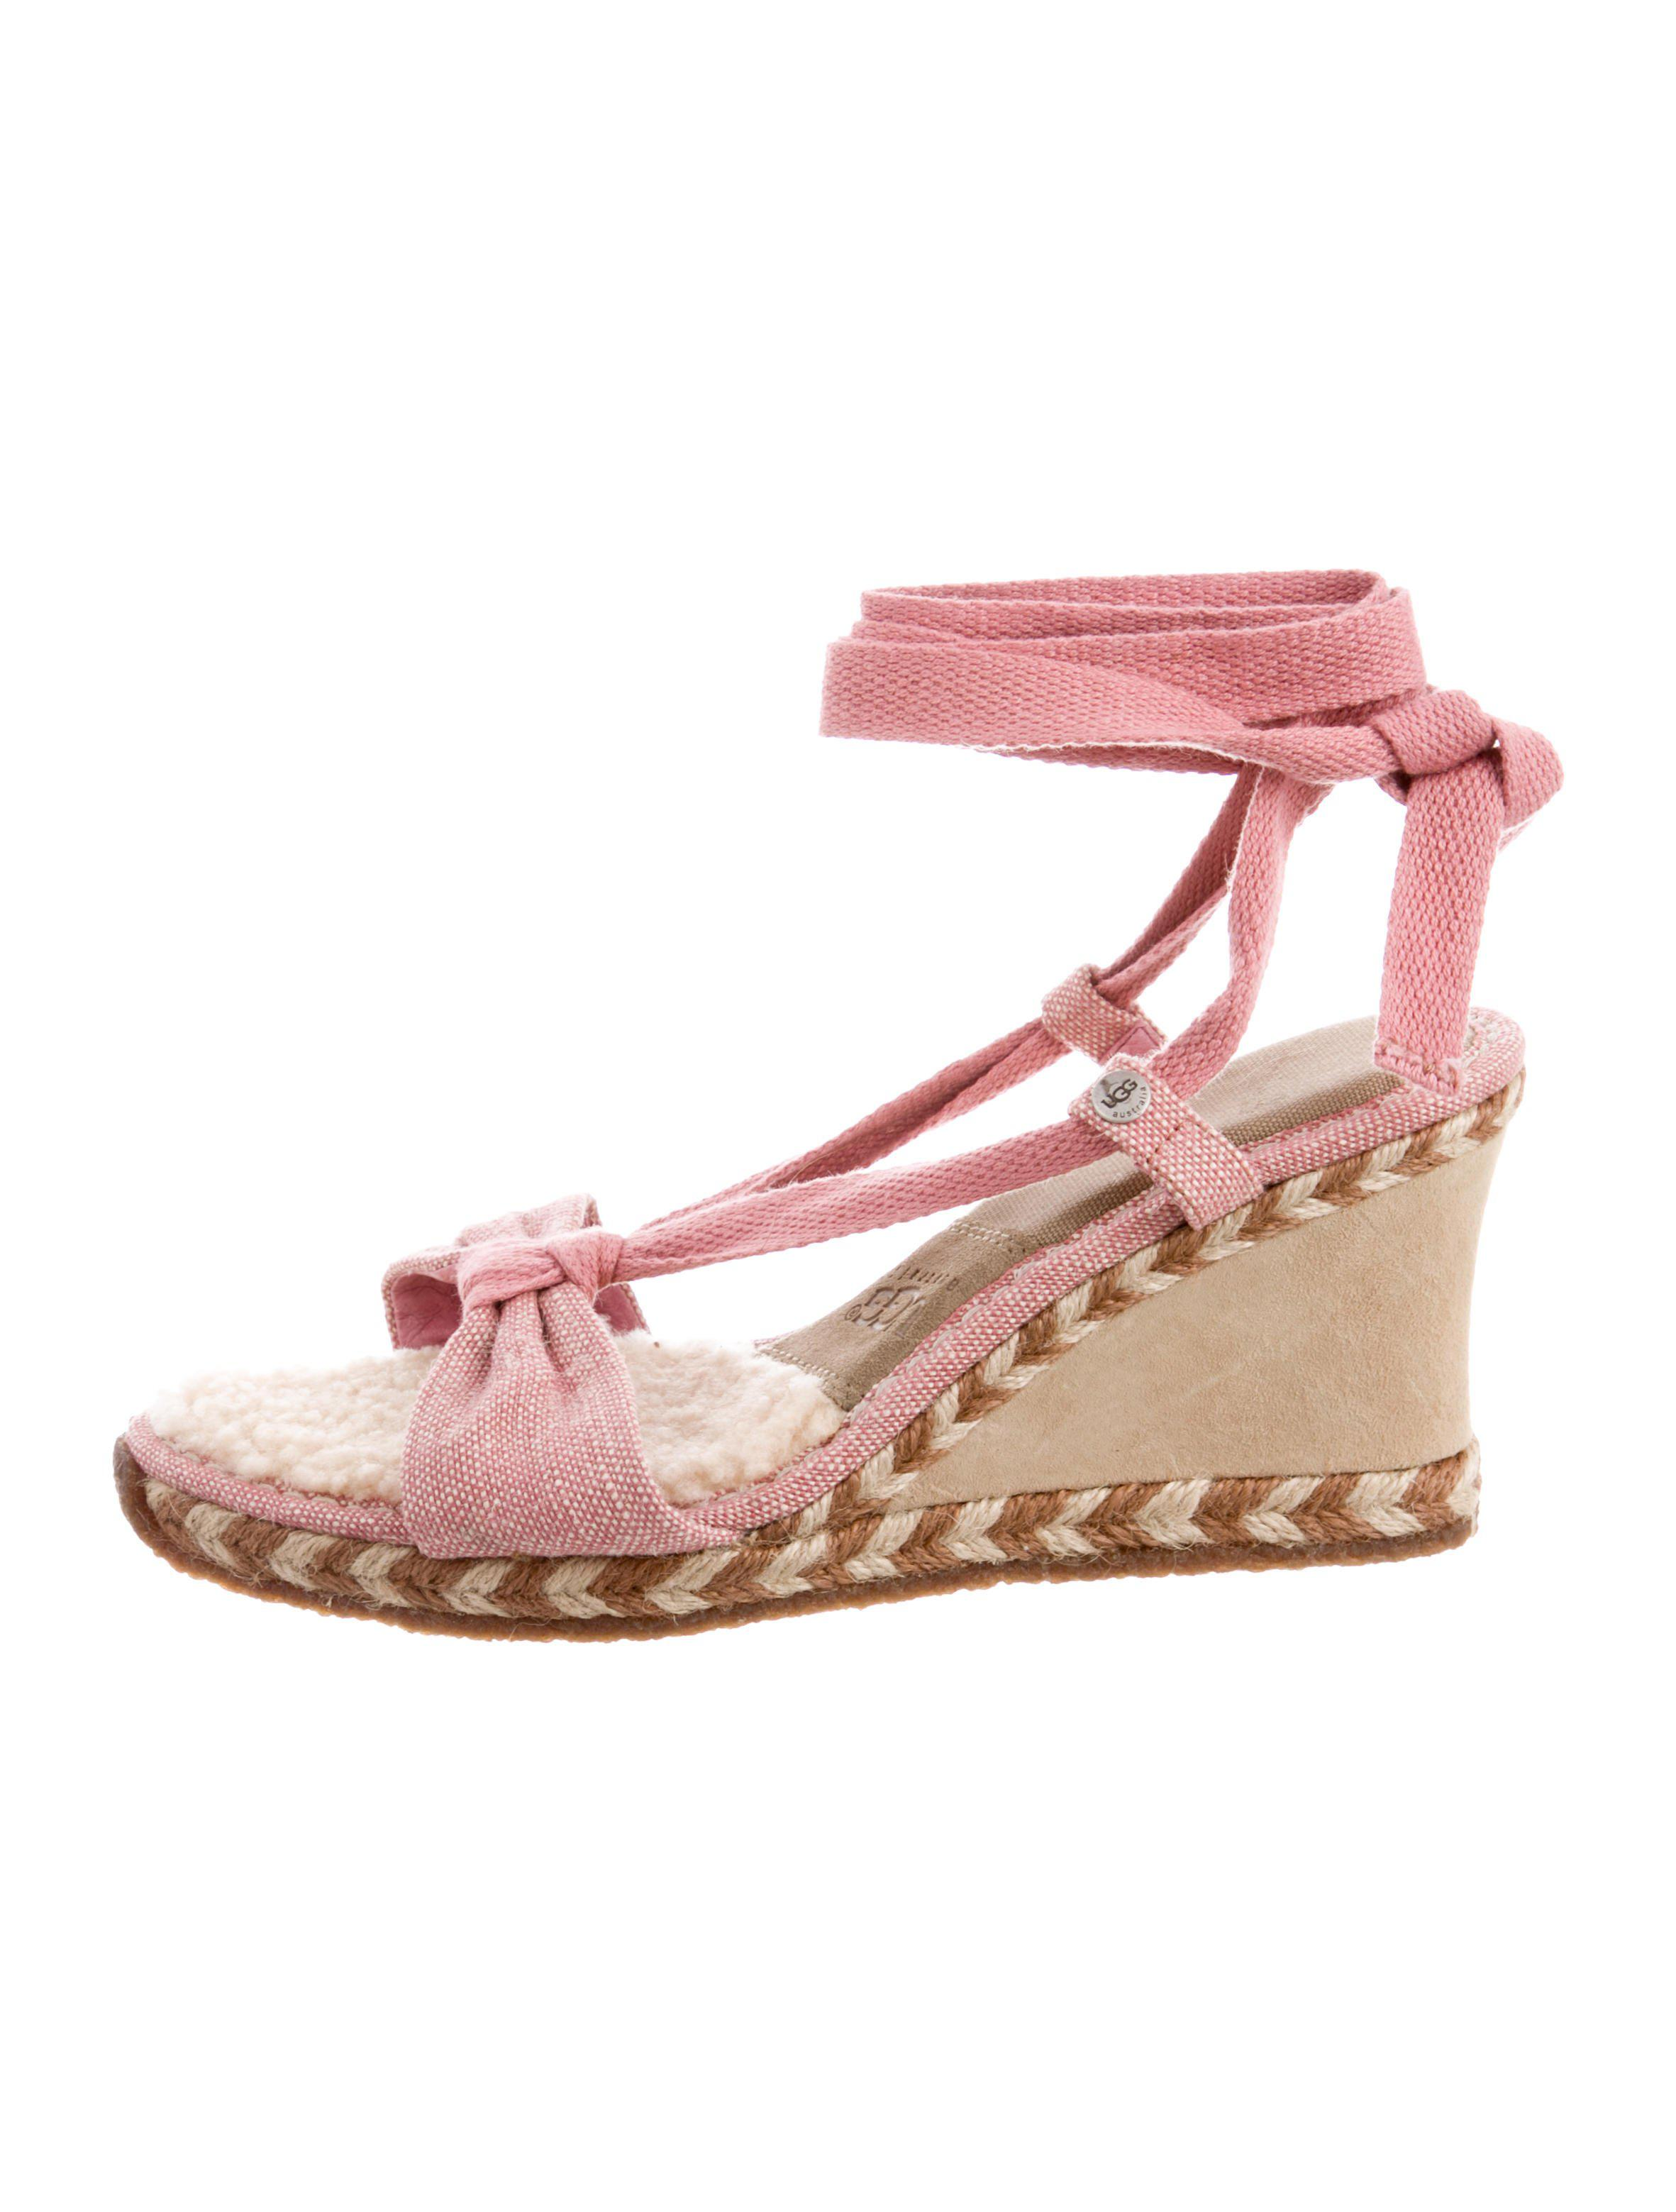 UGG. Women's Pink Lace-up Wedge Sandals